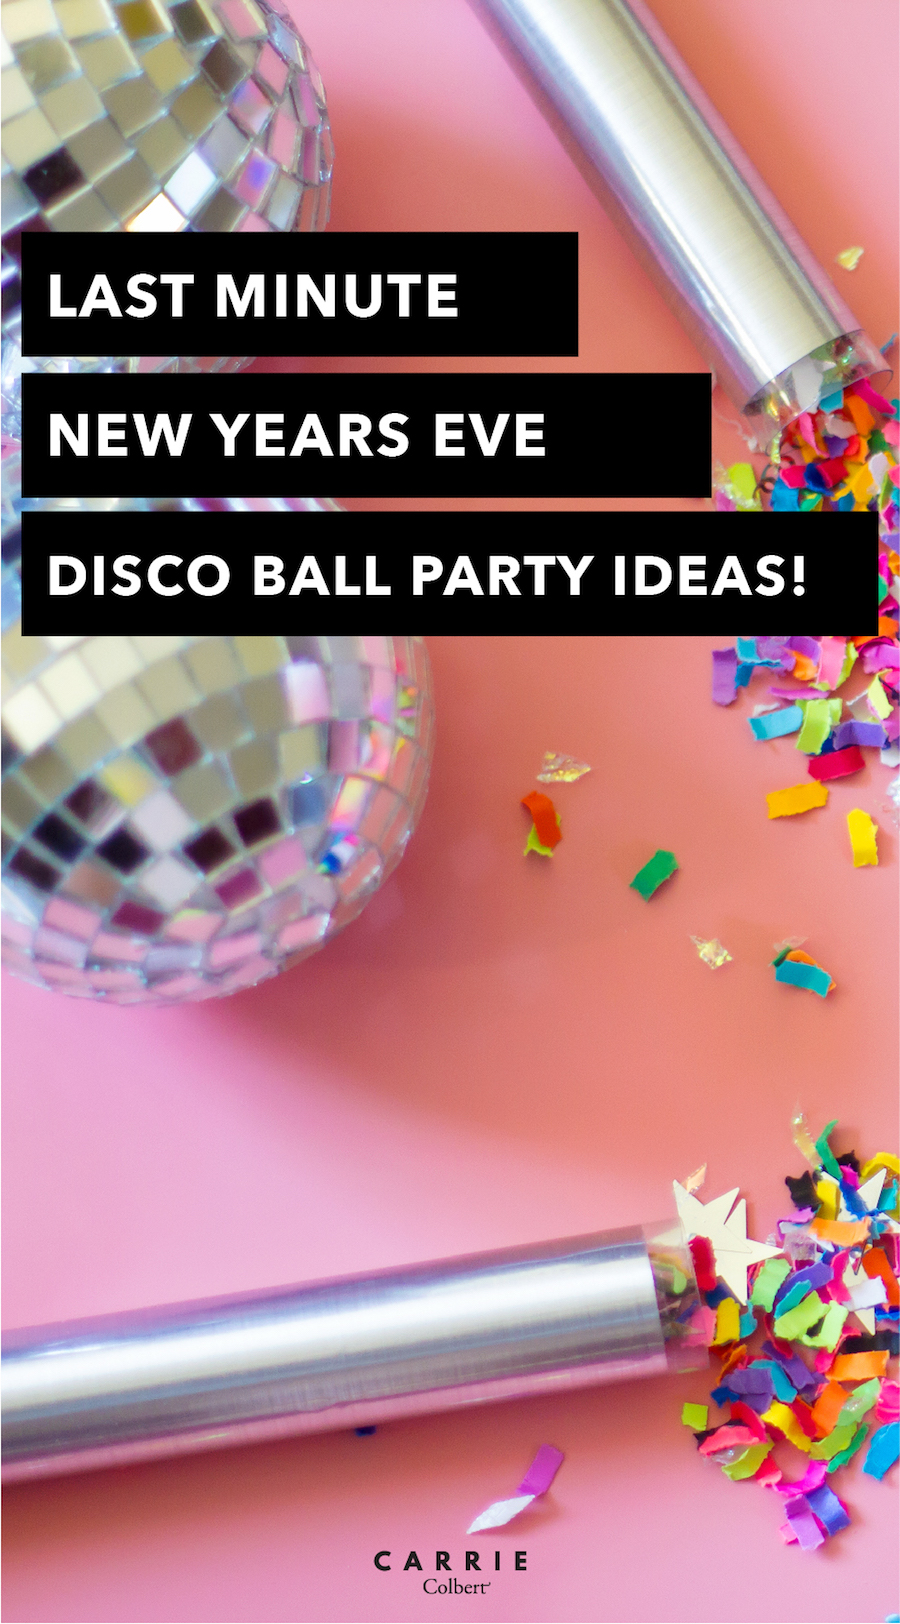 Last minute New Year's Eve ideas